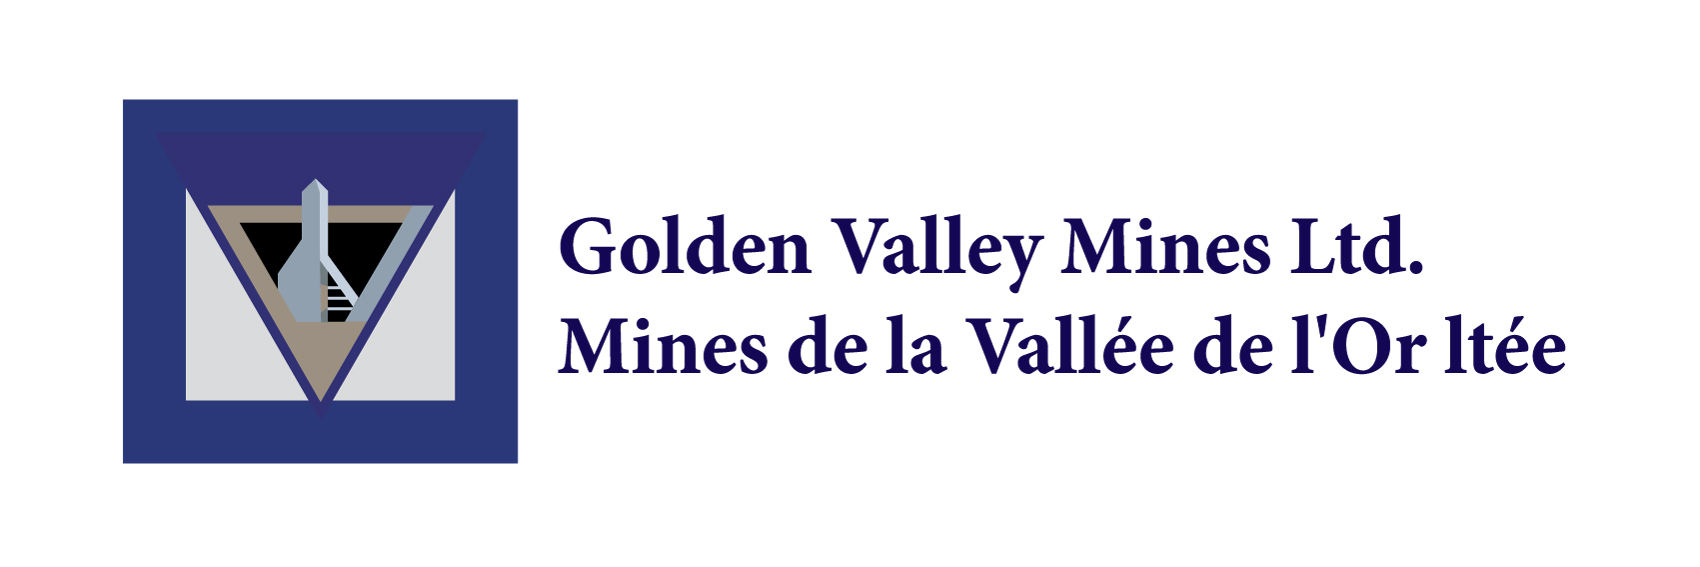 Golden Valley Mines Announces Exercise of Option